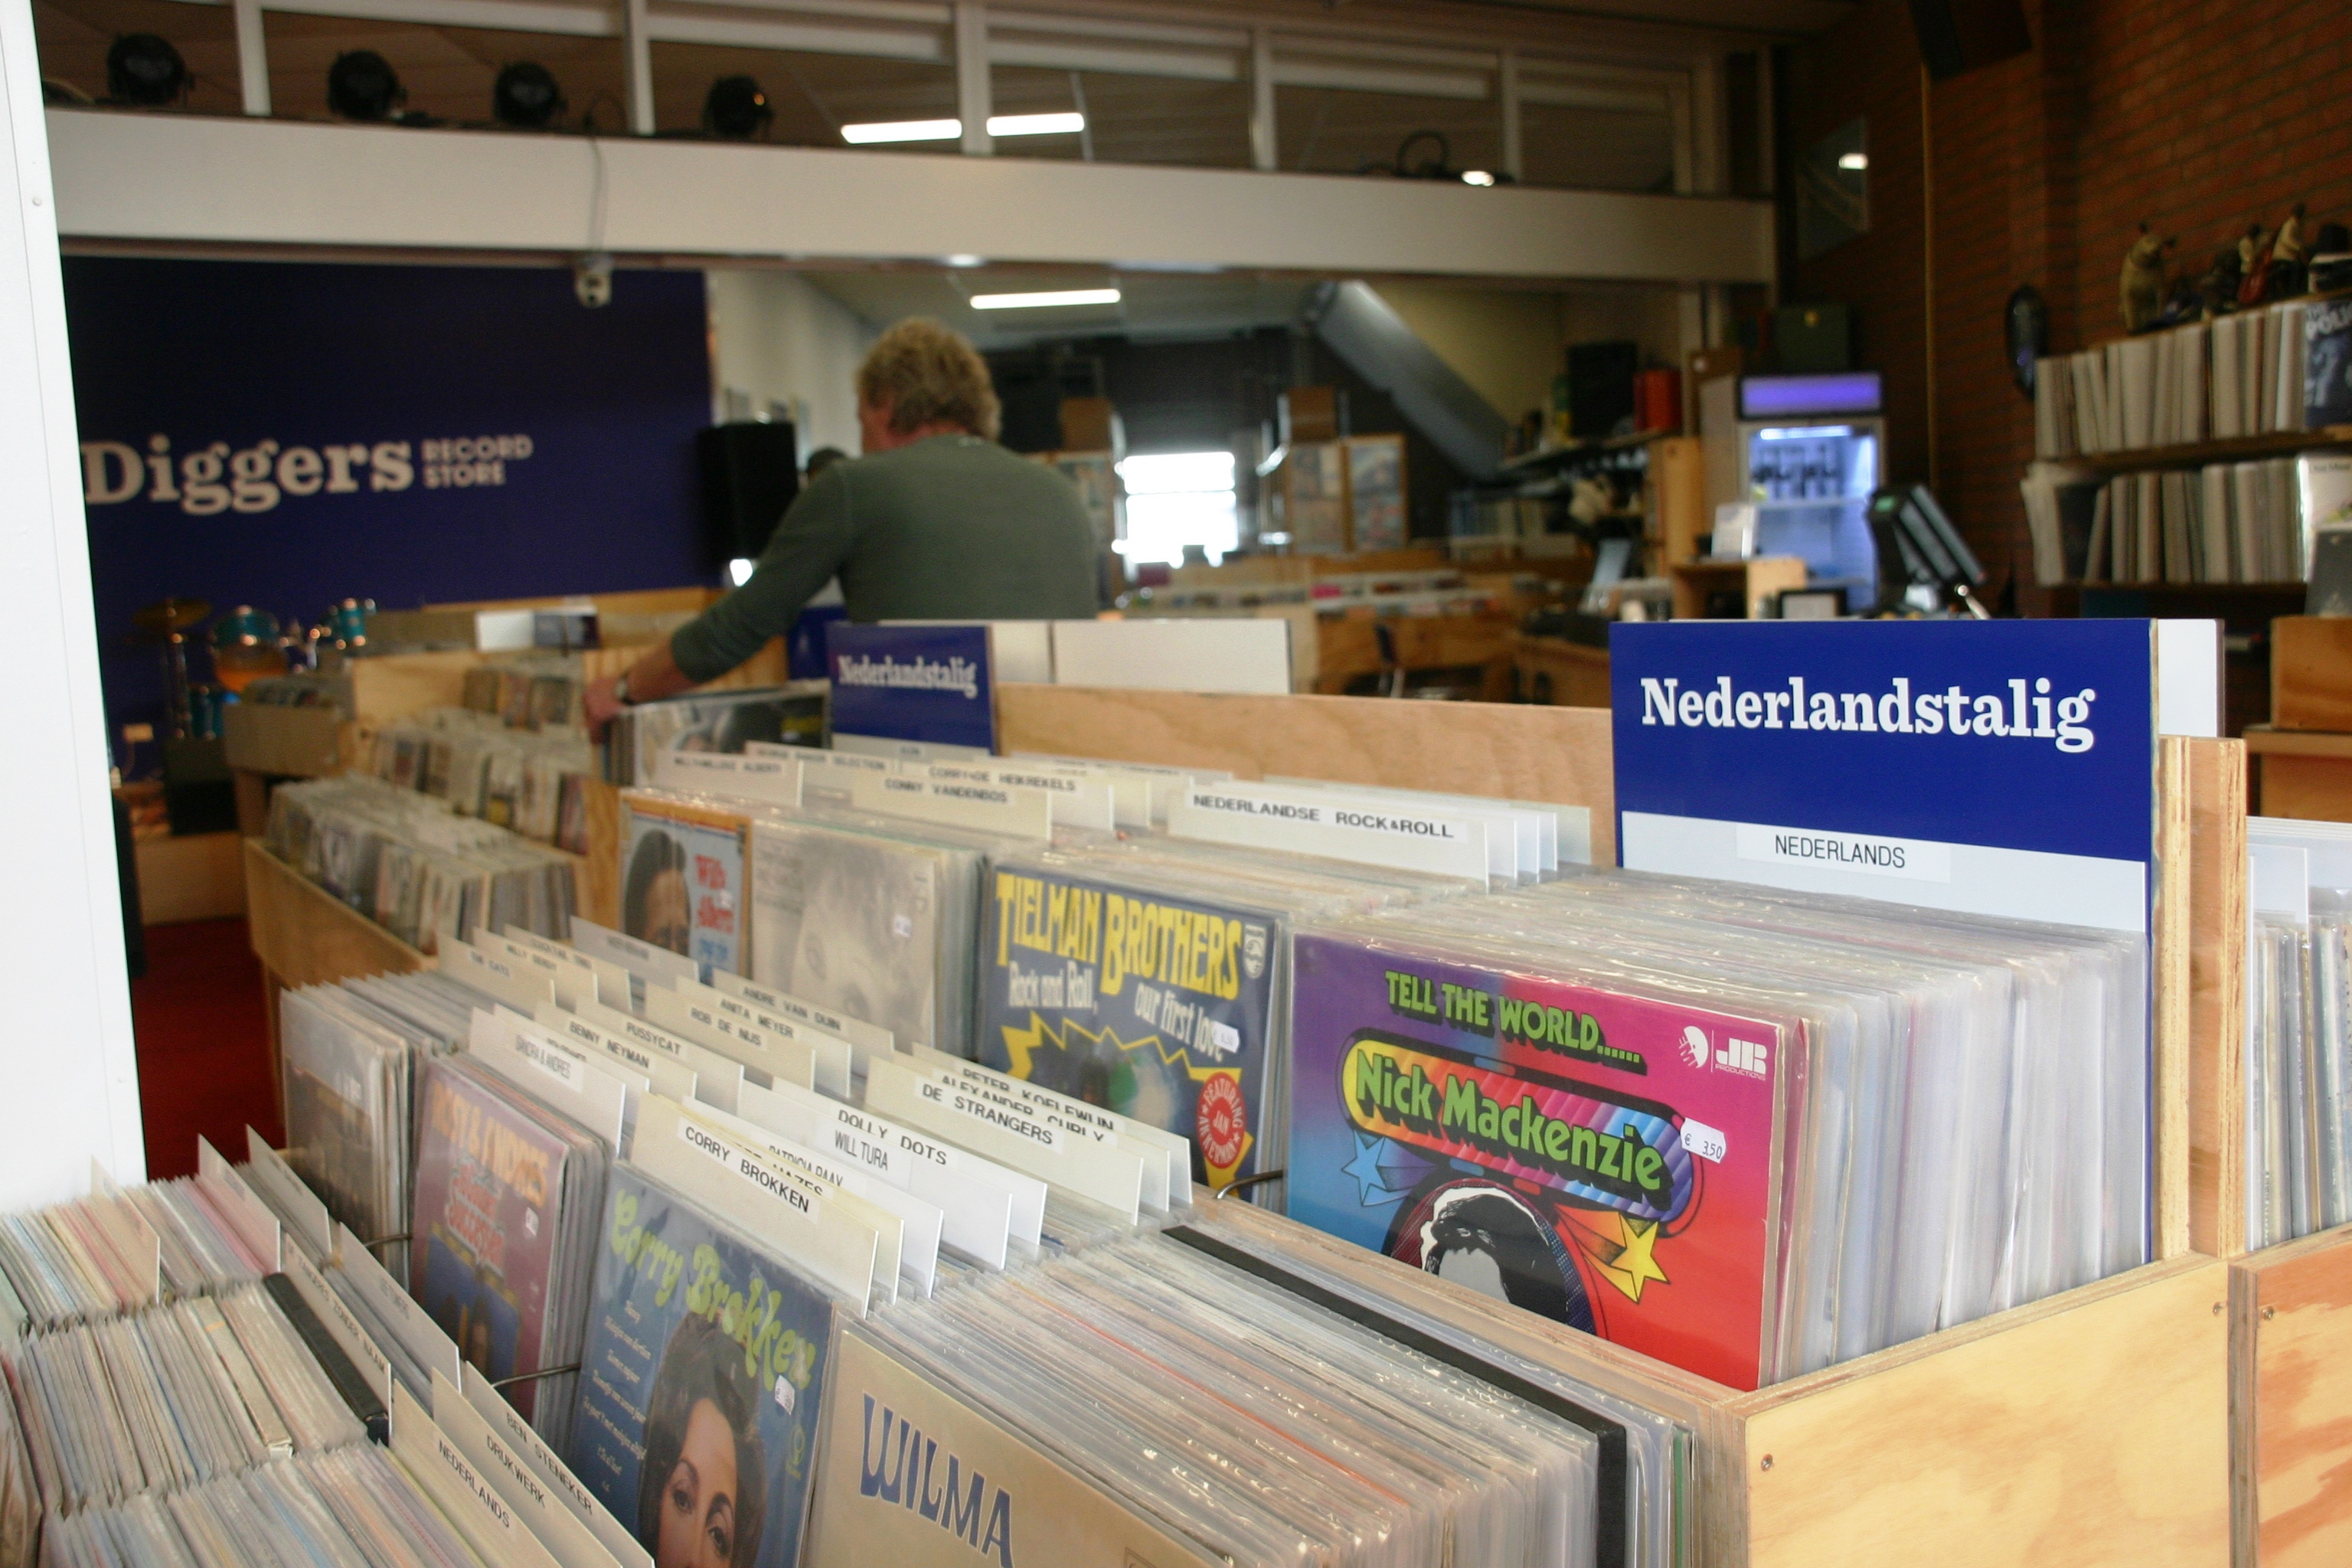 Diggers_record_store_GN_2017013